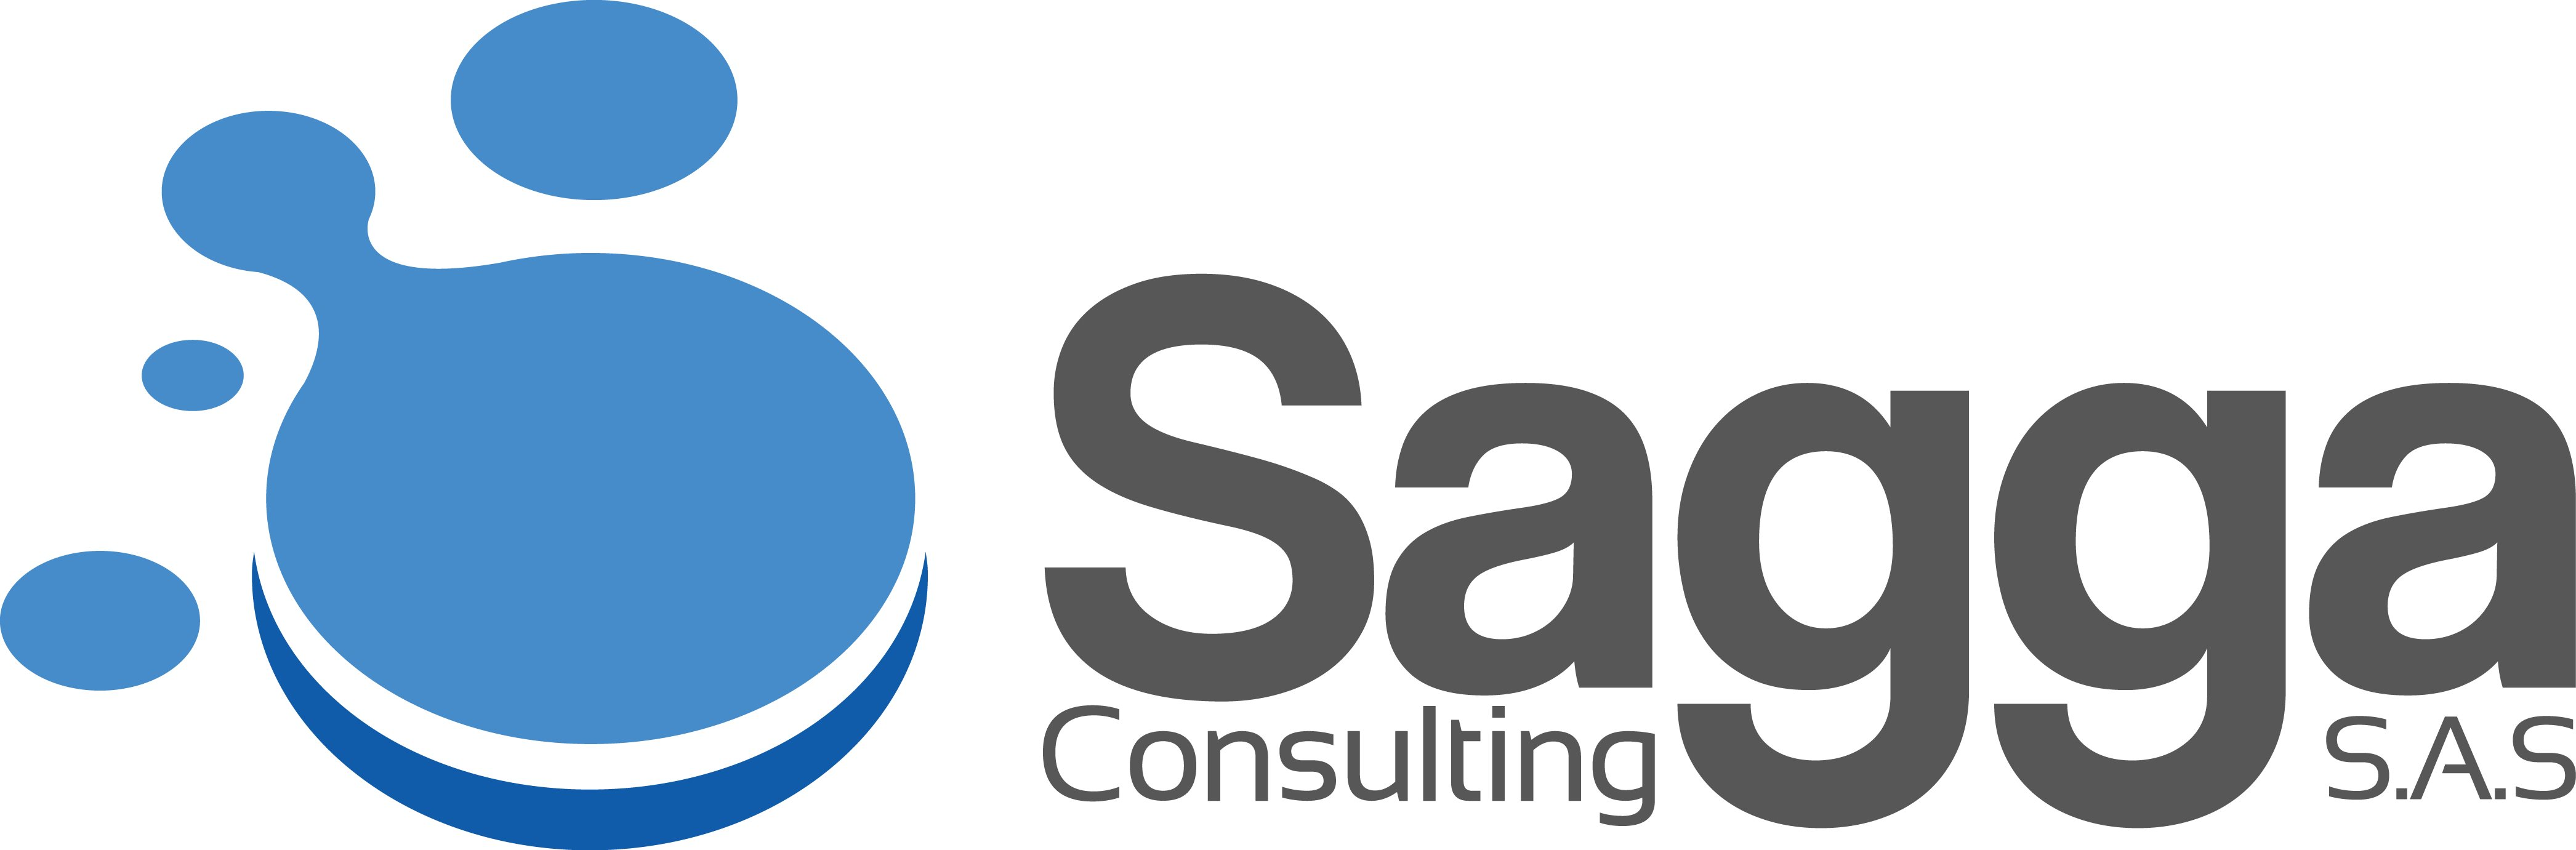 Sagga Consulting S.A.S